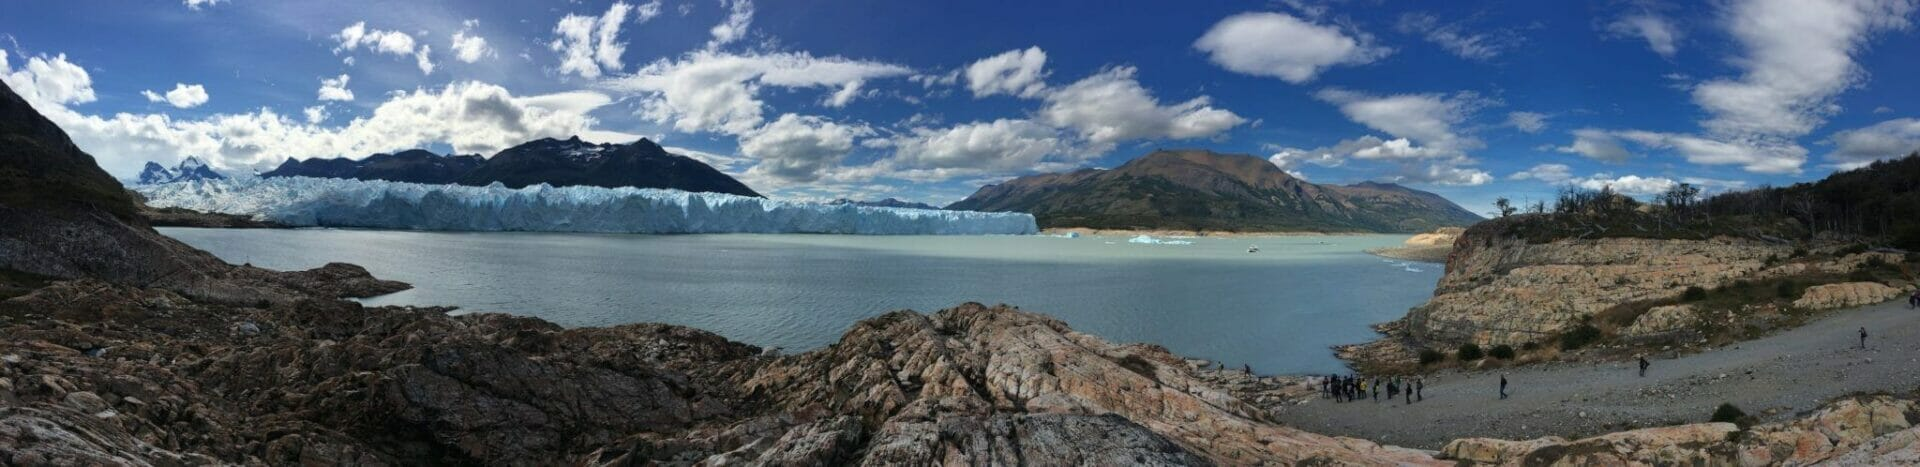 Perito Moreno South Shore Panorama